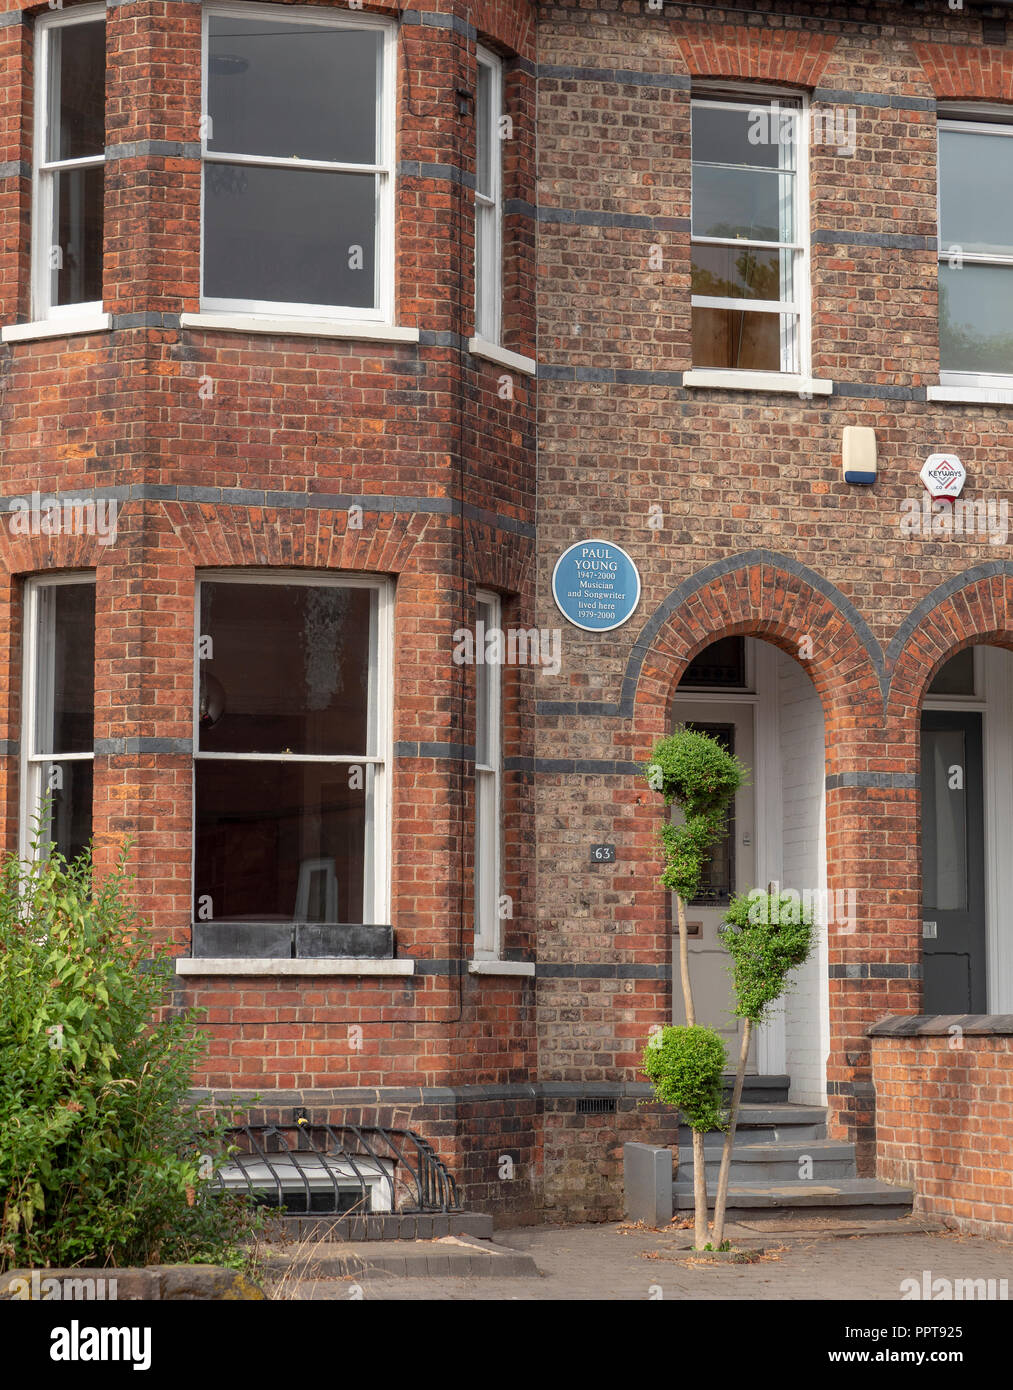 Paul Young musician and songwriter lived here at 63 Hale Road, Altrincham, Trafford, Greater Manchester, England, UK - Stock Image